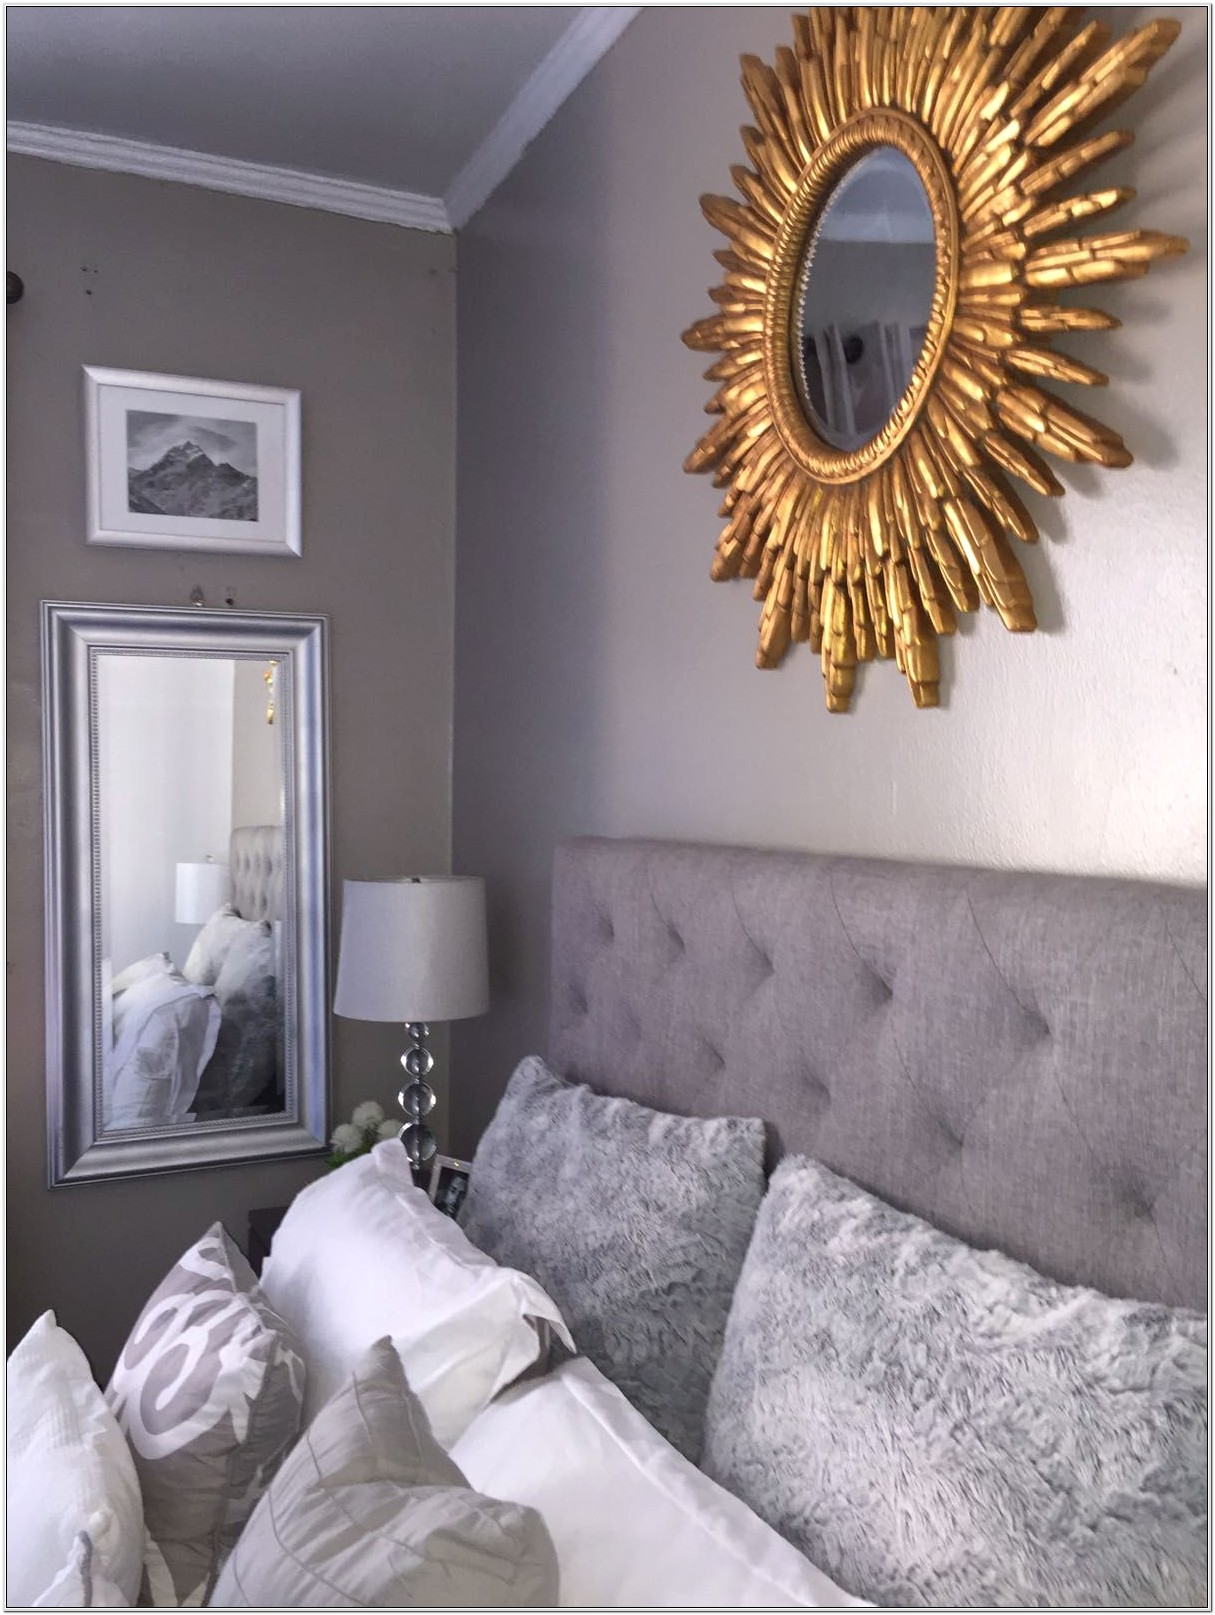 Bedrooms Decorated In Gray And Gold